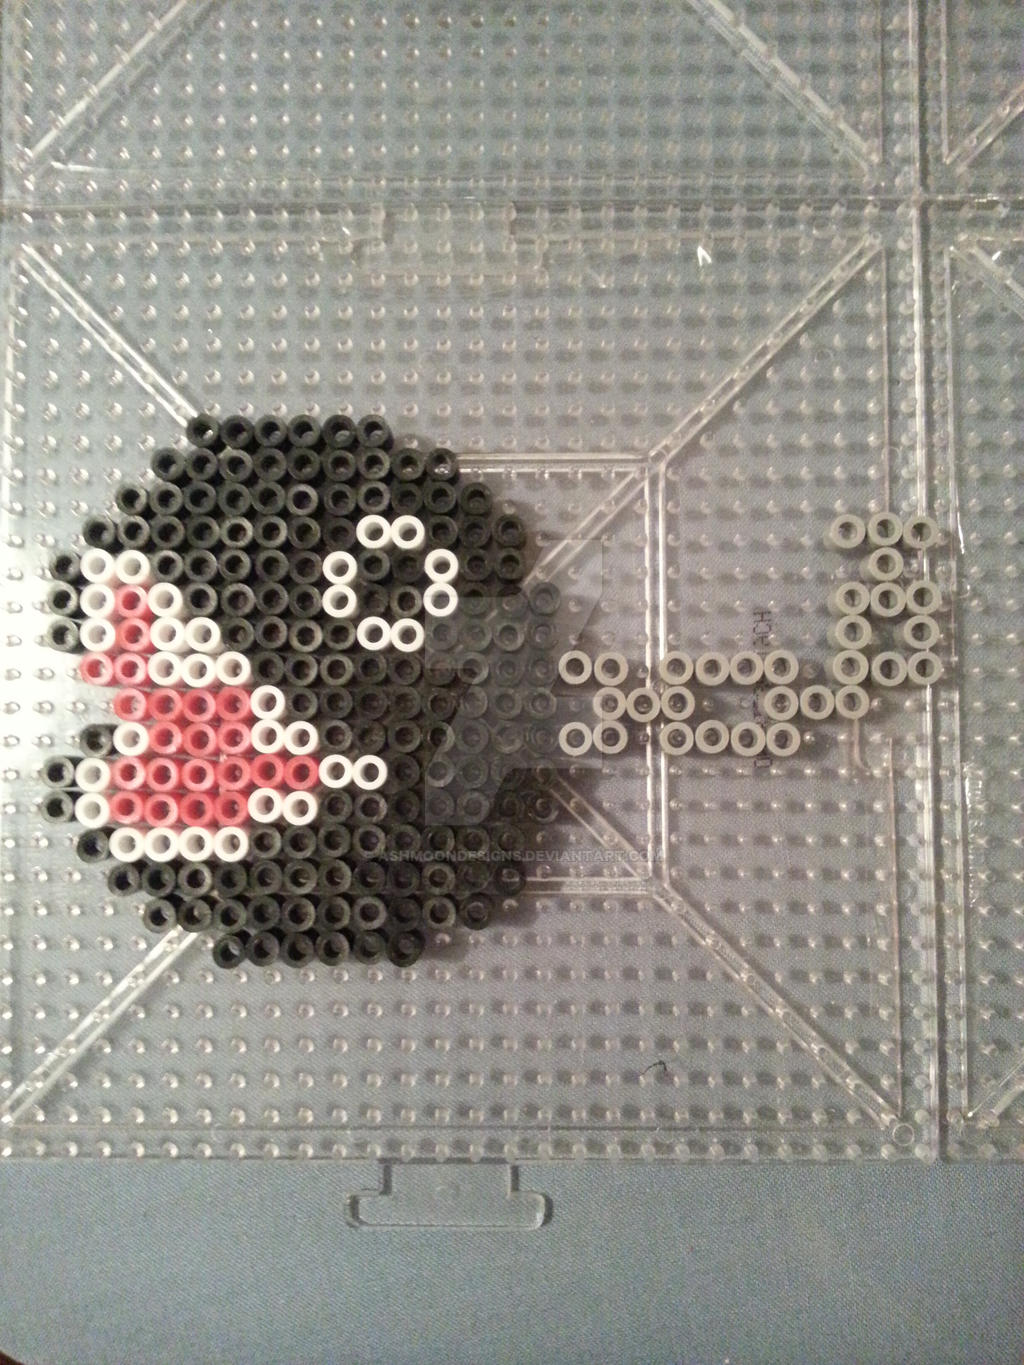 Chain Chomp Perler Bead Figure By Ashmoondesigns On Deviantart